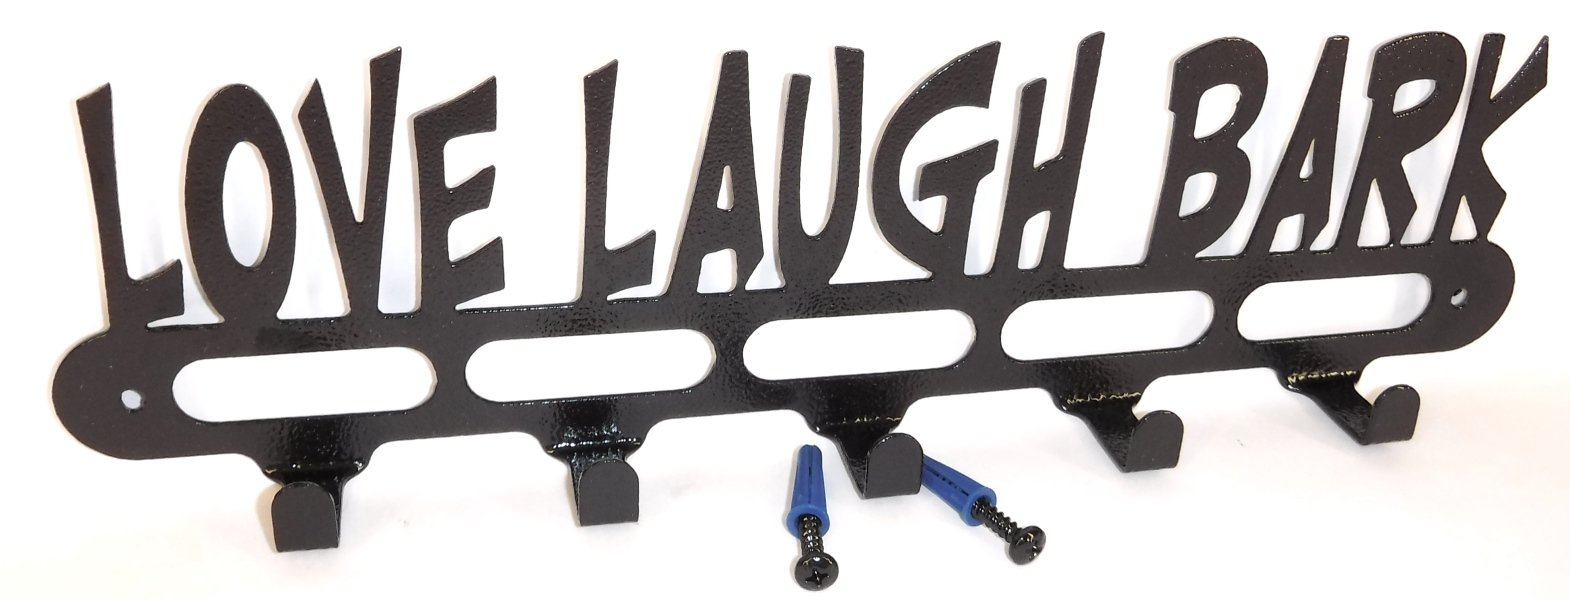 Dog Leash Wall Hook. Love Laugh Bark. Handmade in USA. 14.25 inches wide. Gloss Black Texture